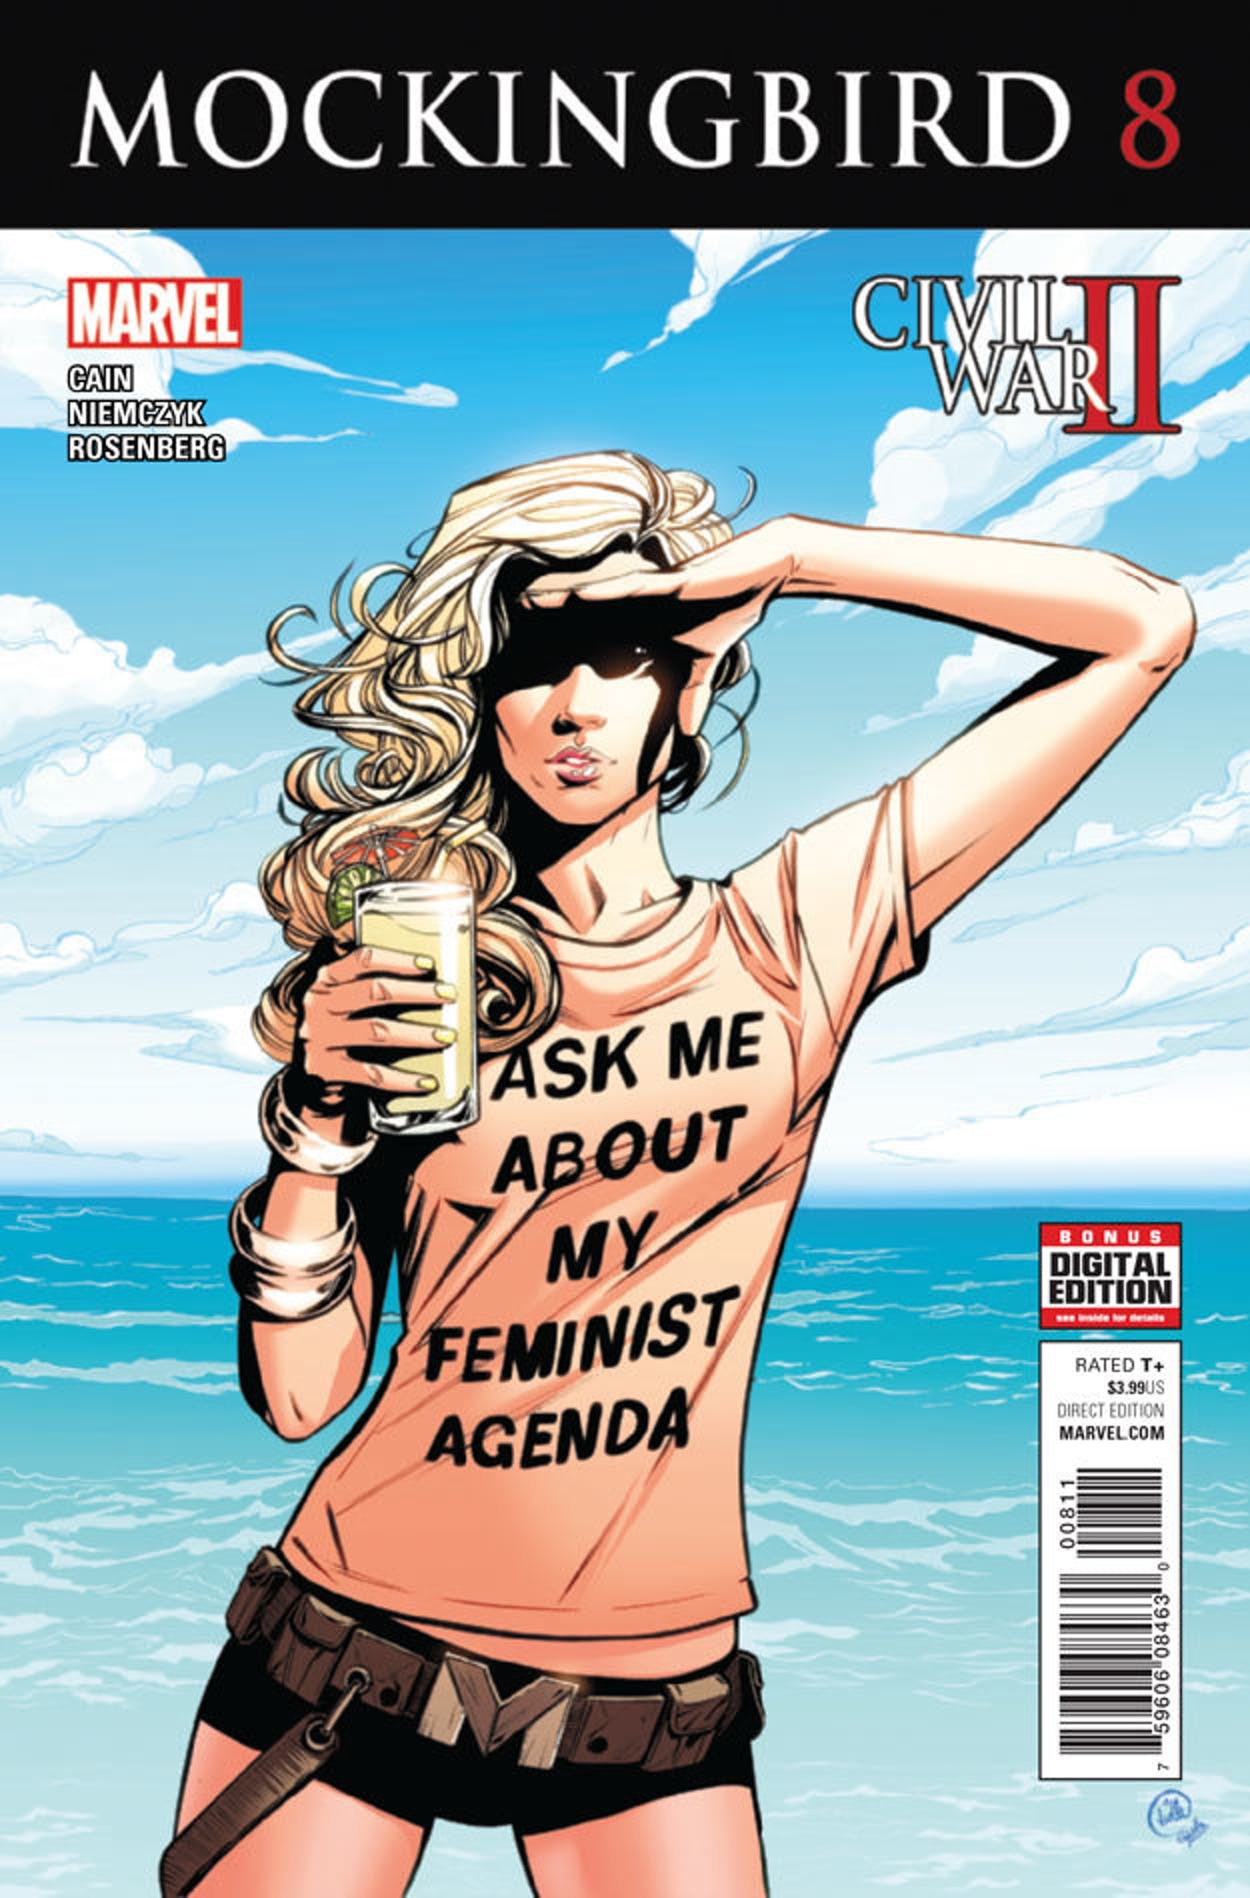 Cover for Marvel's Mockingbird #8